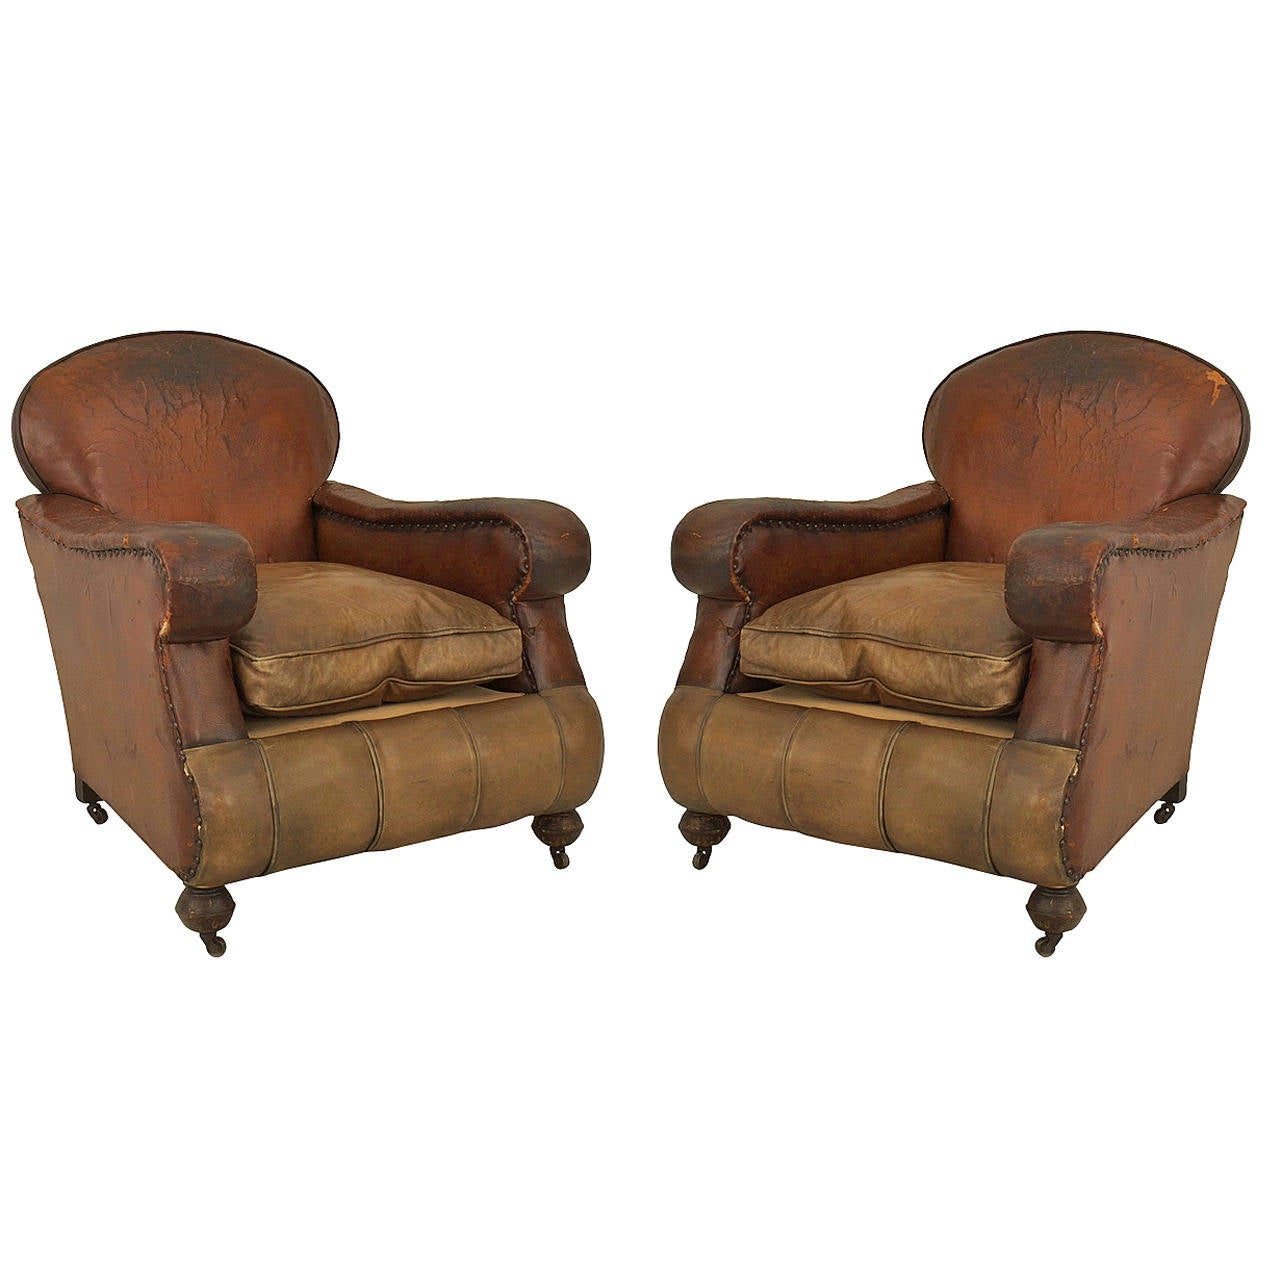 Big chairs for sale pair of 19th century oversized for Oversized armchairs for sale